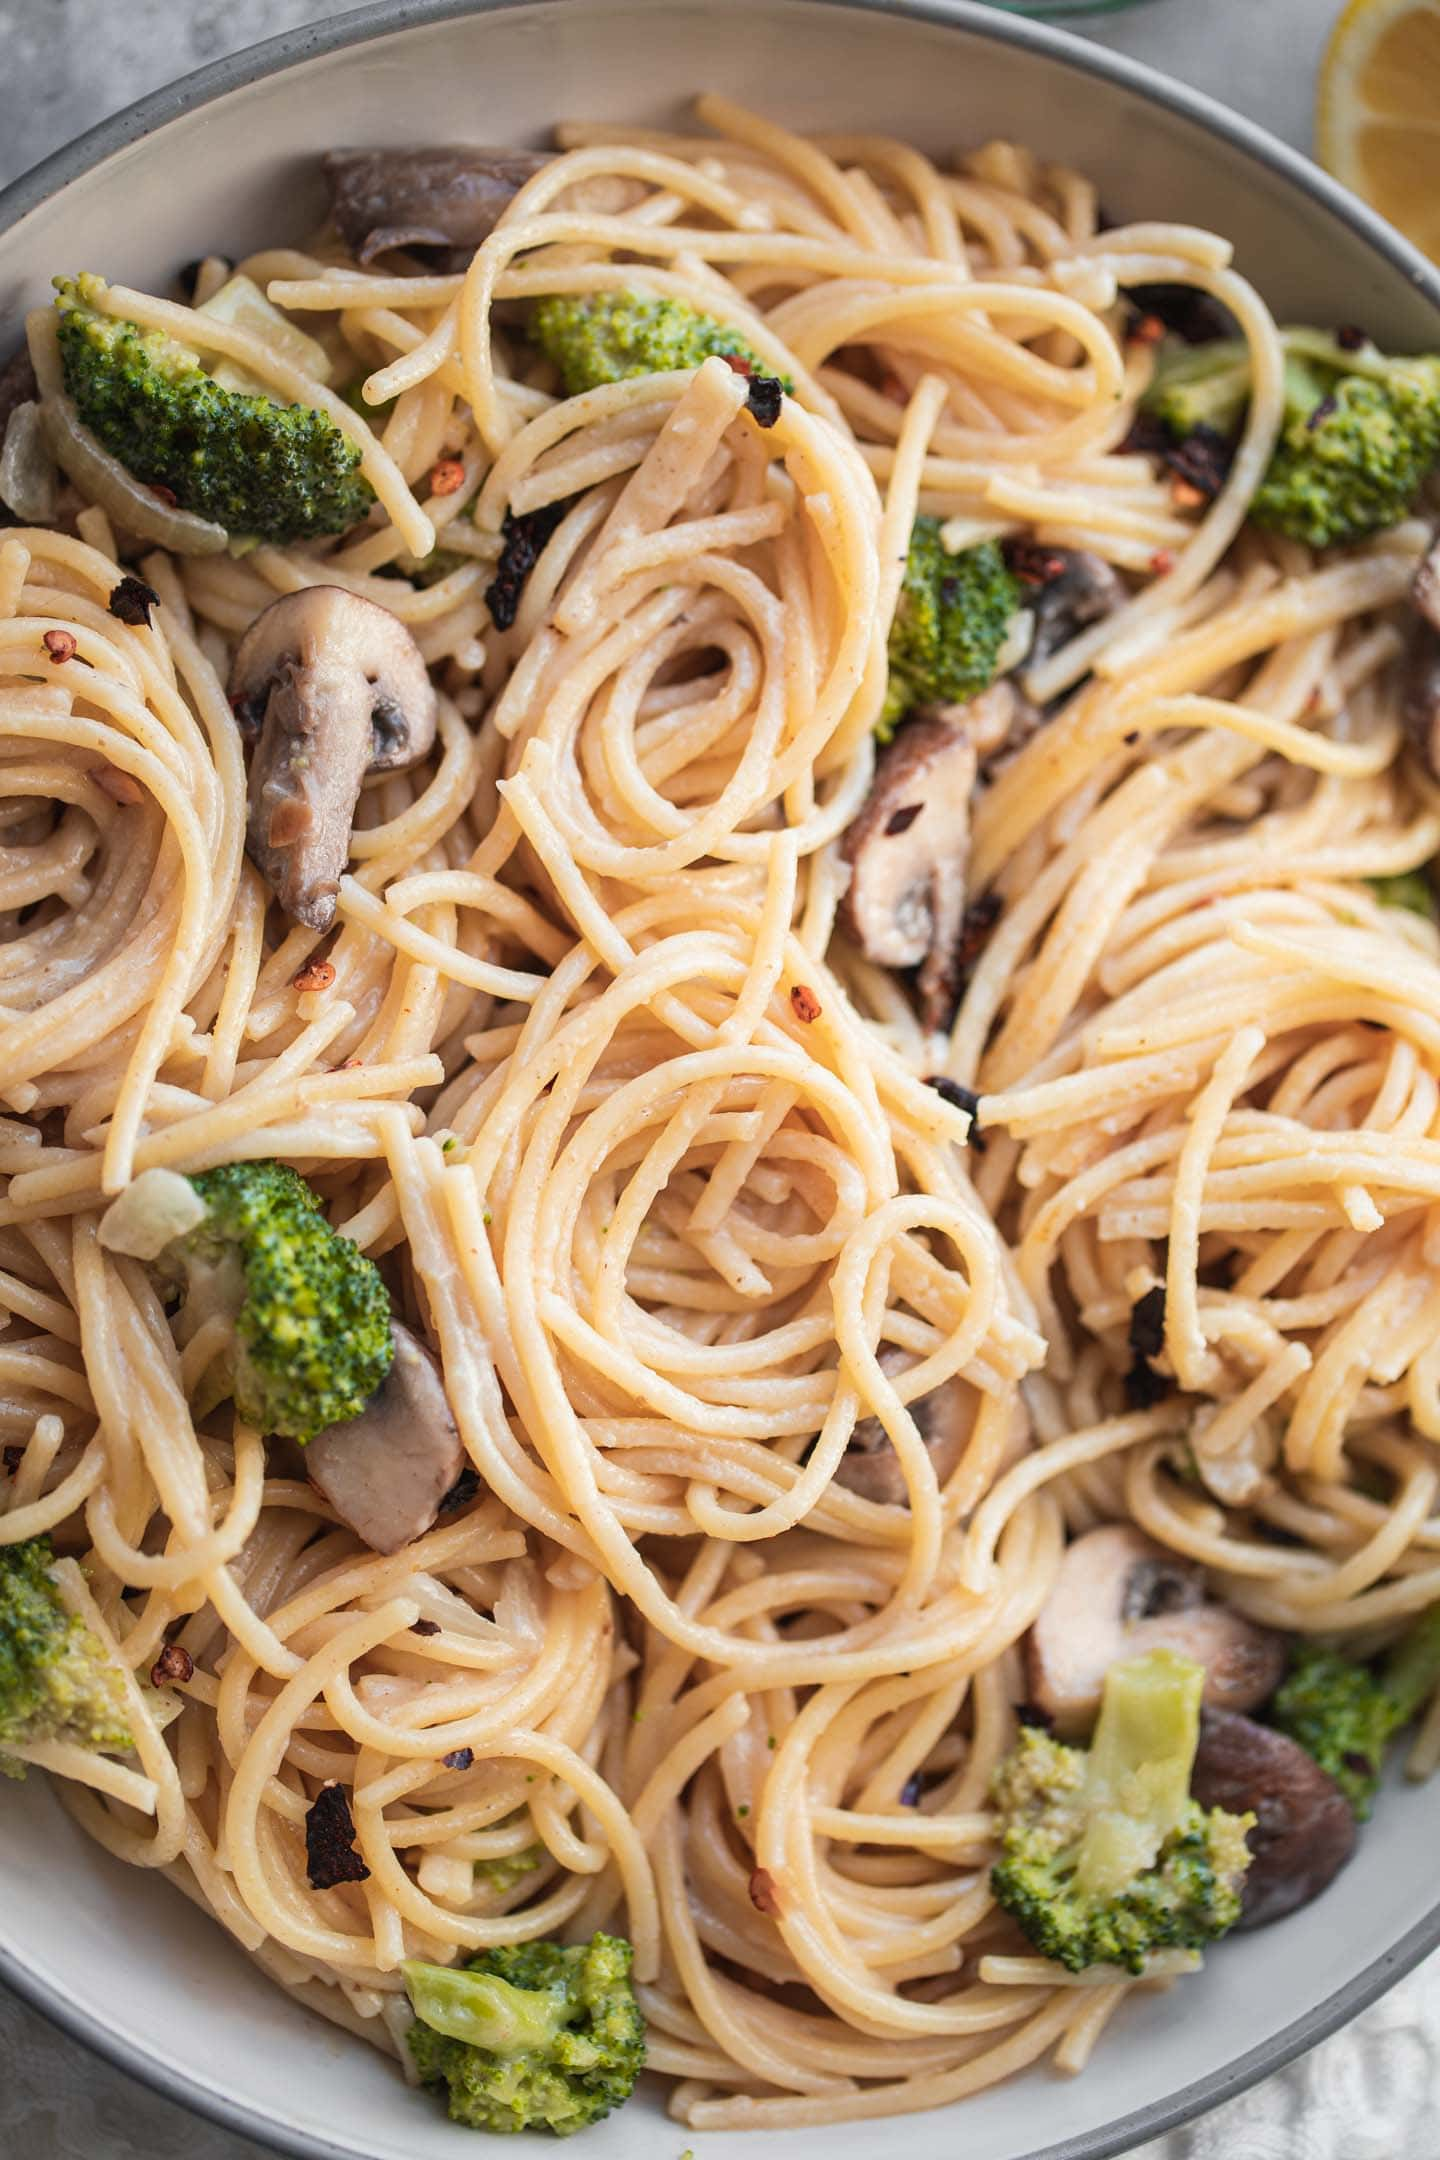 Closeup of a bowl of gluten-free pasta with broccoli and a coconut sauce